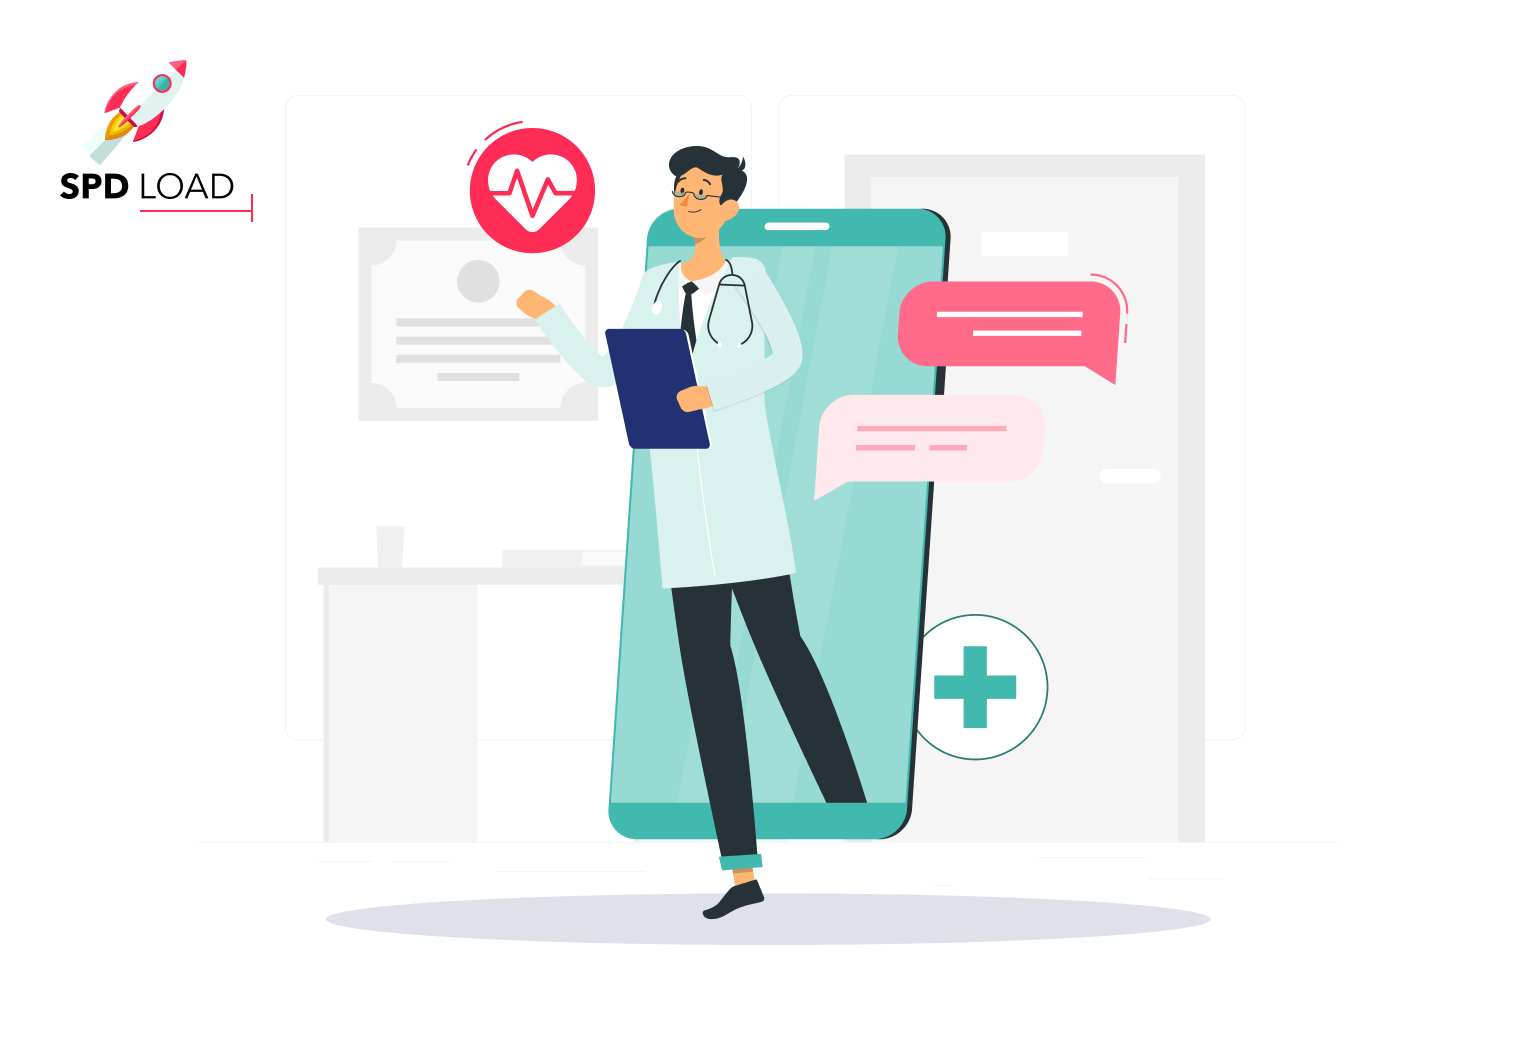 SpdLoad prepare an in-depth guide about how to design a healthcare mobile app